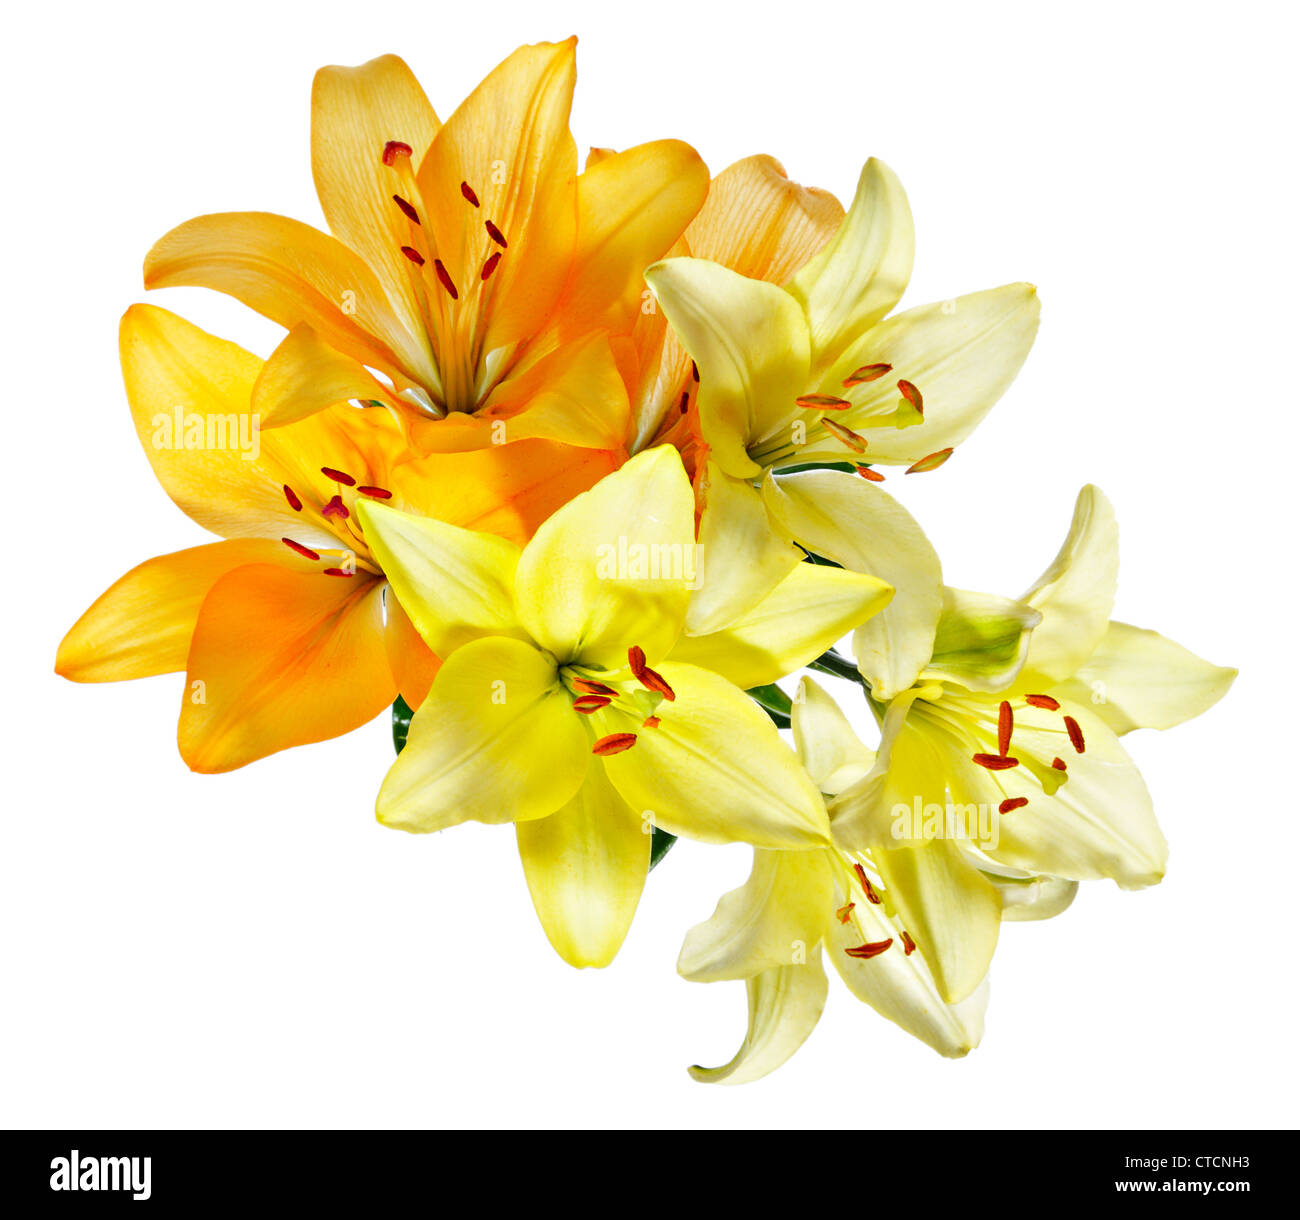 Flowers yellow lilies on a white background top view stock photo plan view of flowers orange and white yellow lilies on a white background dhlflorist Image collections